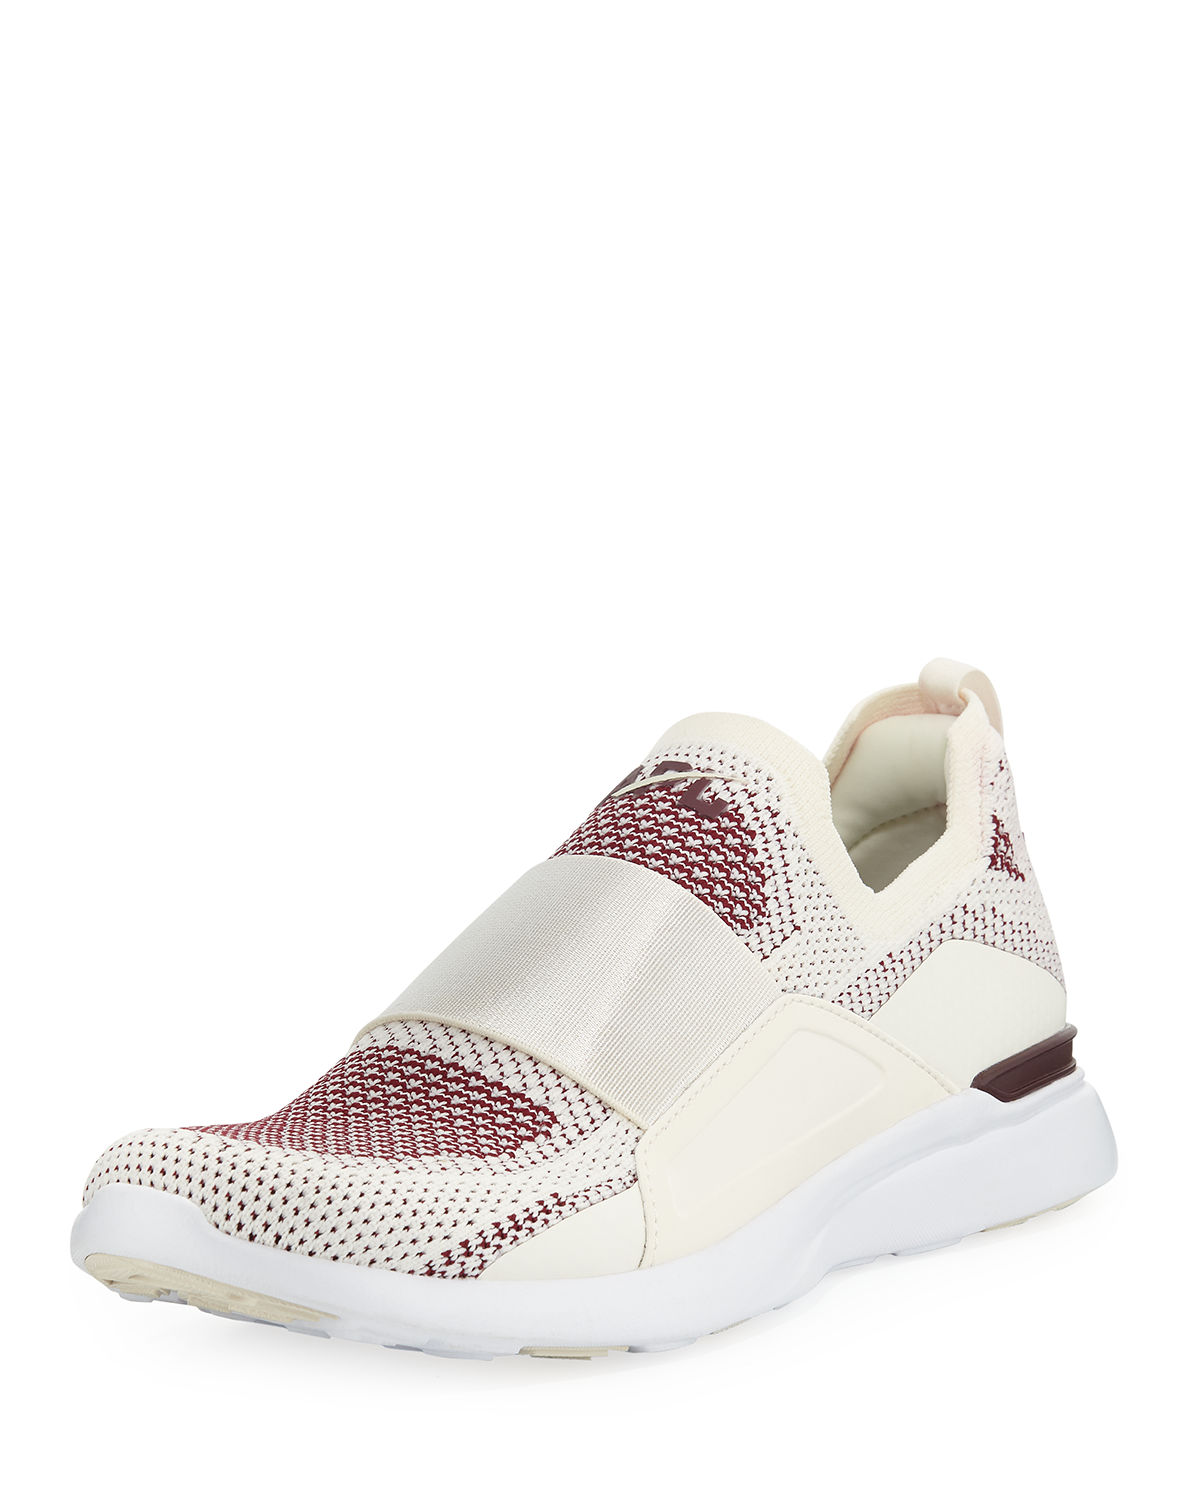 Apl Athletic Propulsion Labs TECHLOOM BLISS KNIT SLIP-ON RUNNING SNEAKERS